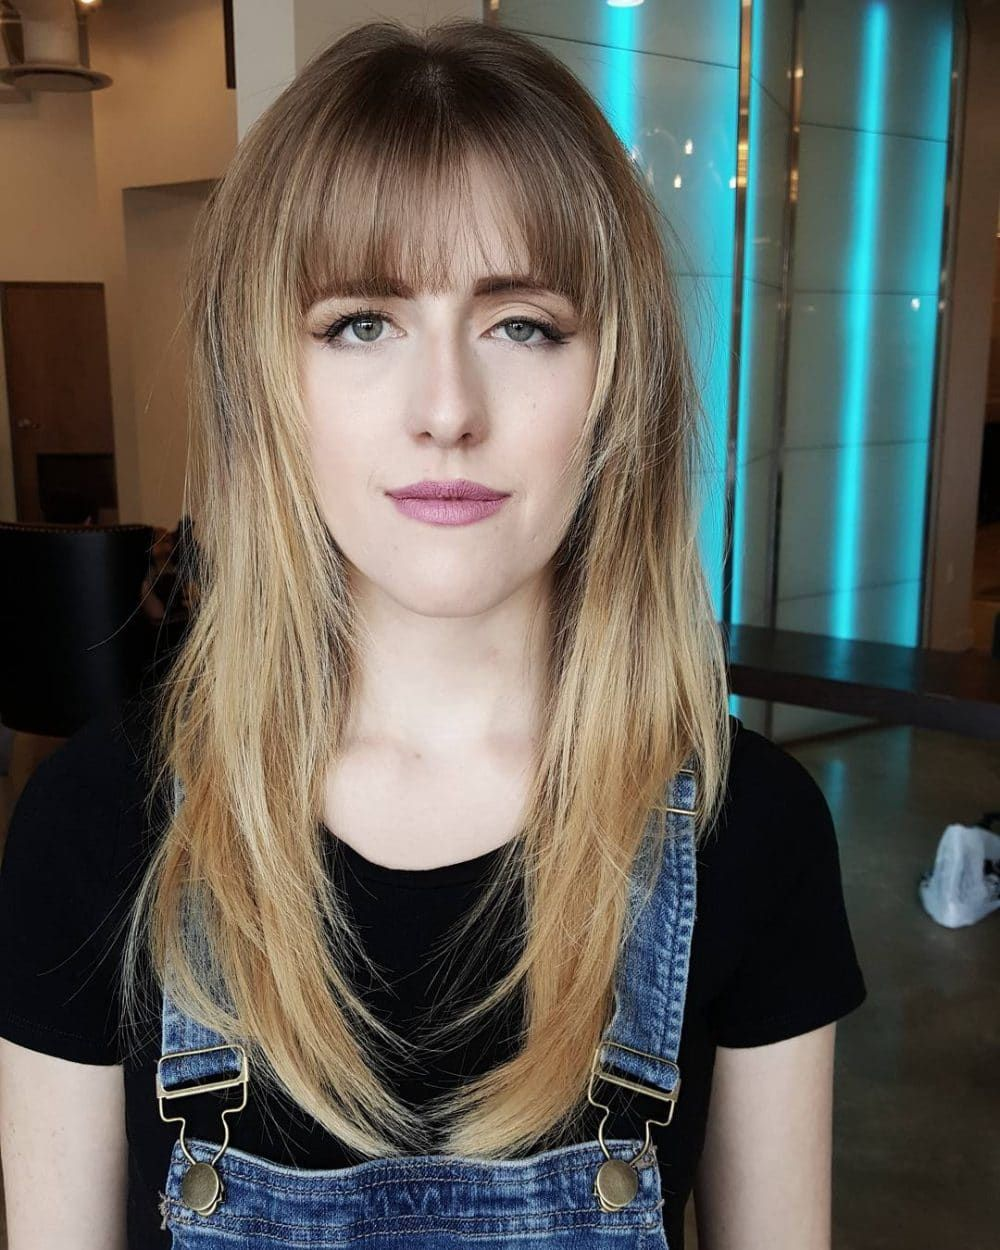 Latest 38 Cute Long Hair With Bangs Hairstyles 2020 Trends